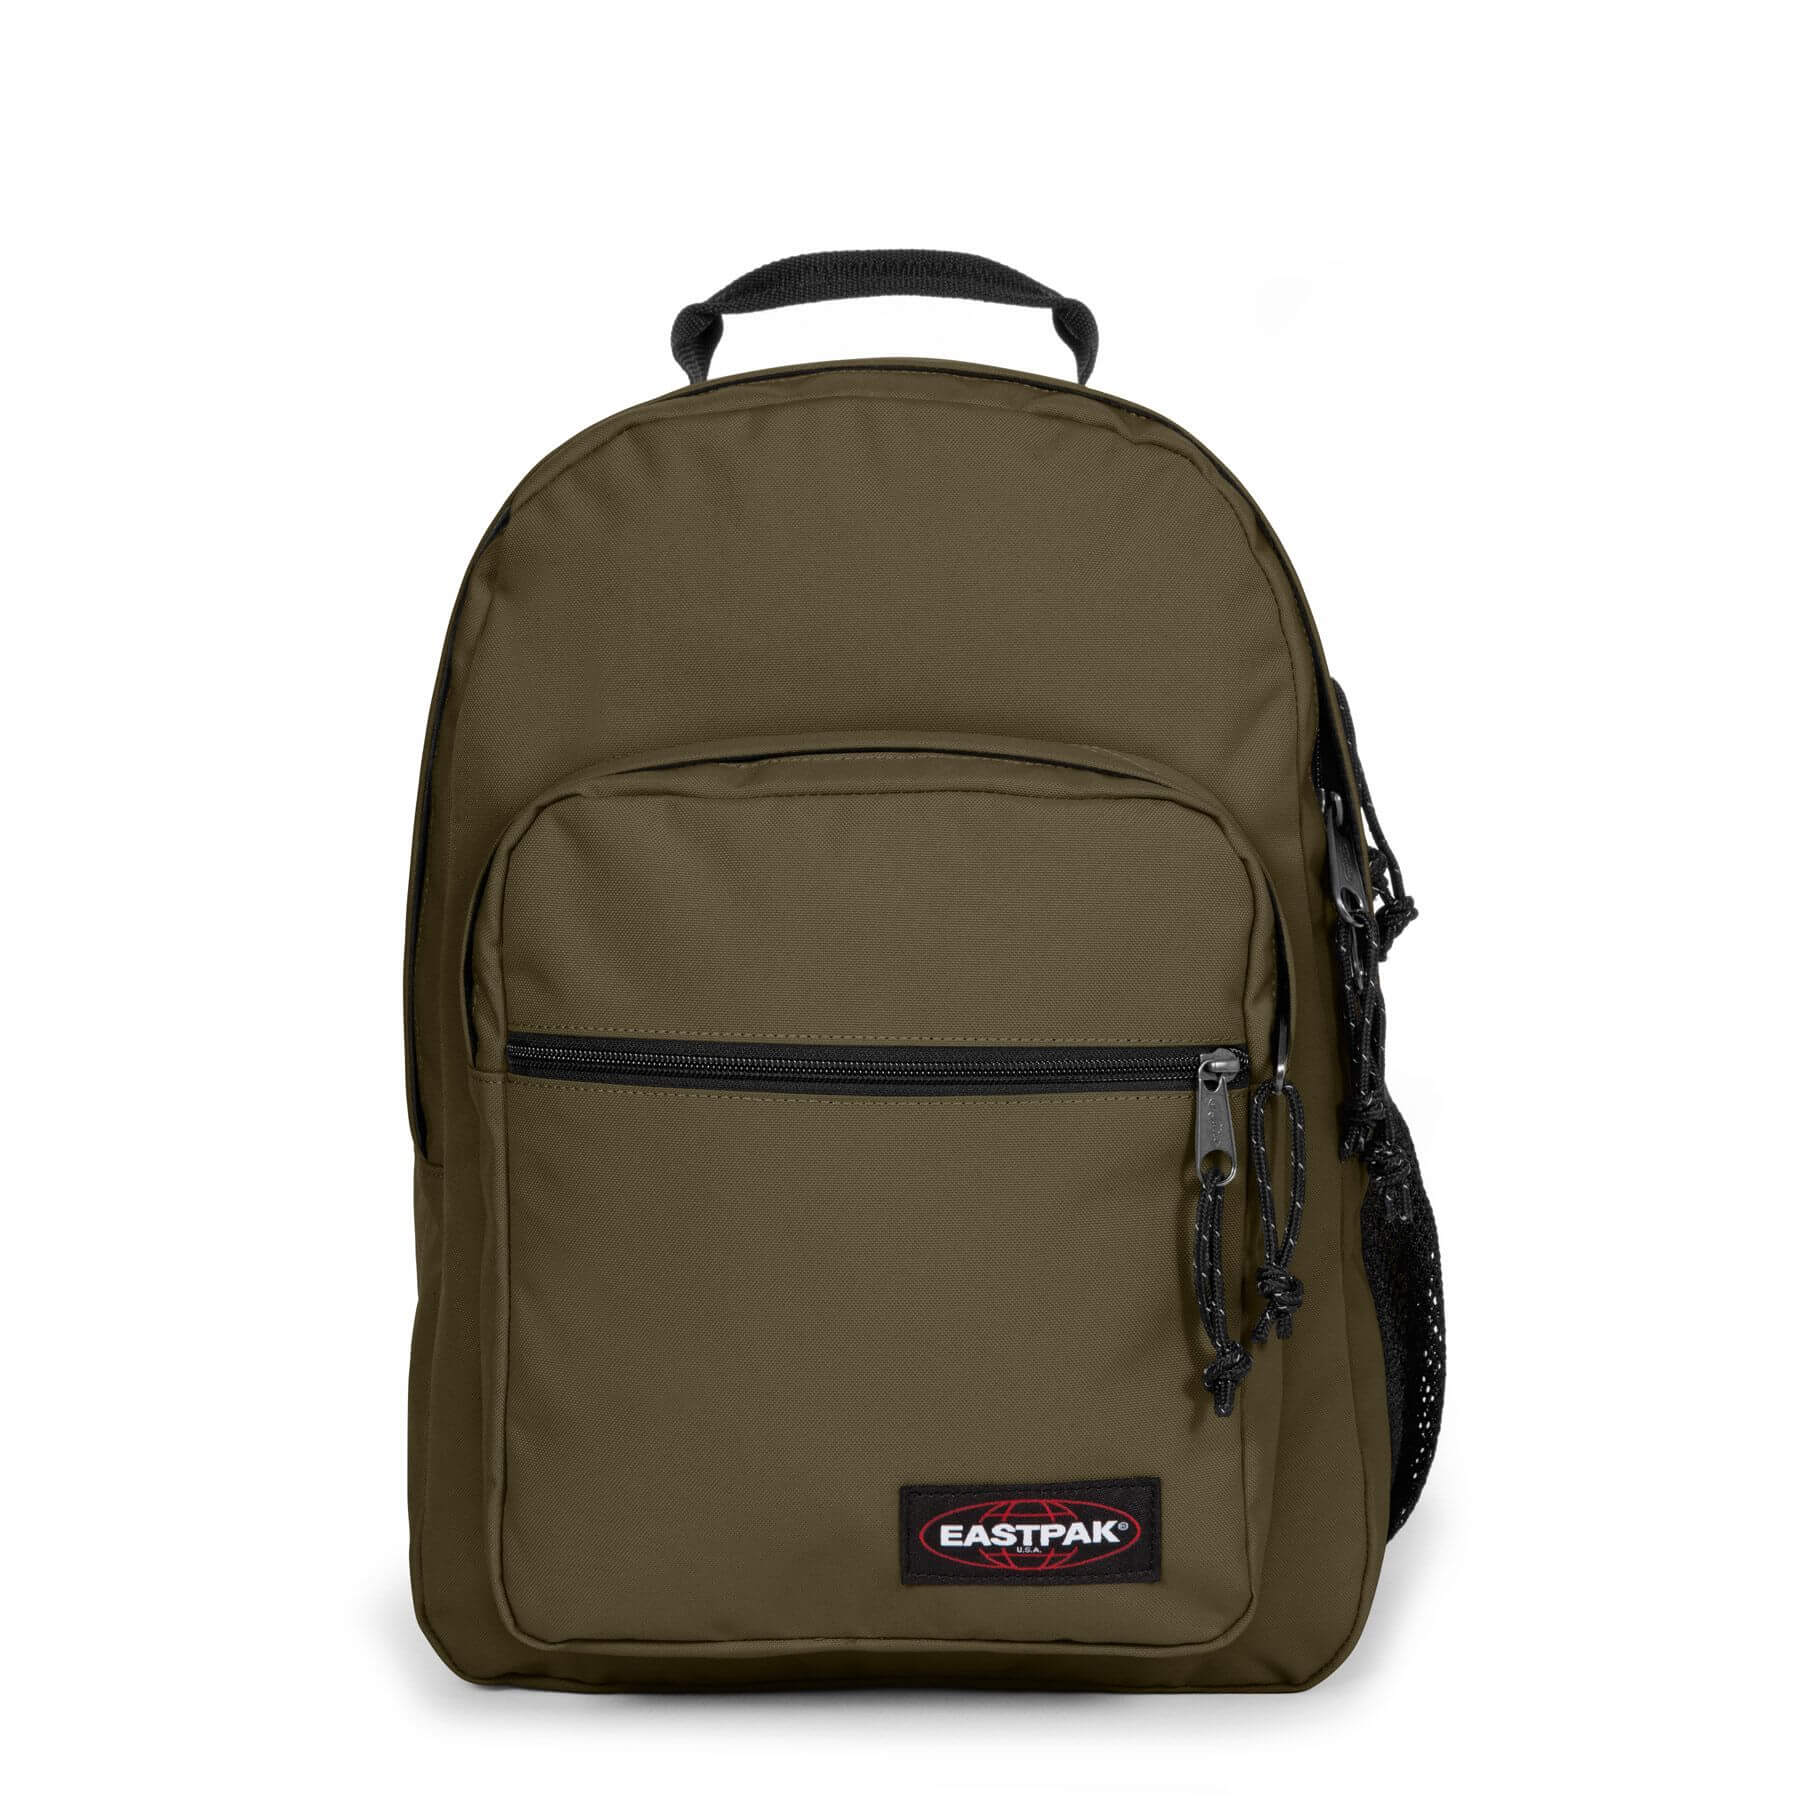 Eastpak Morius Army Olive